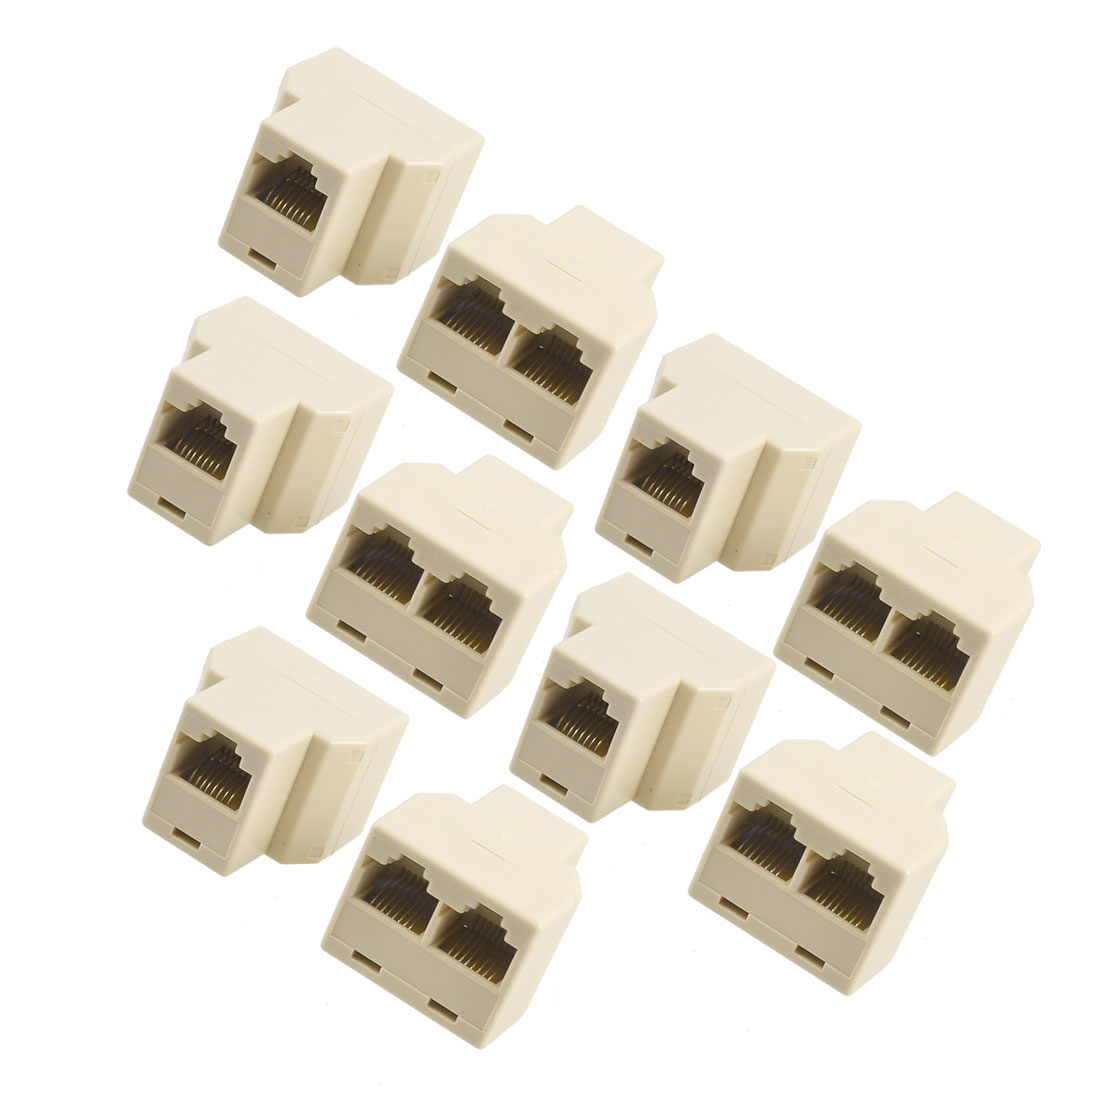 Unique Bargains 10 Pcs 3 Way RJ45 LAN Network Ethernet Splitter Connector Beige